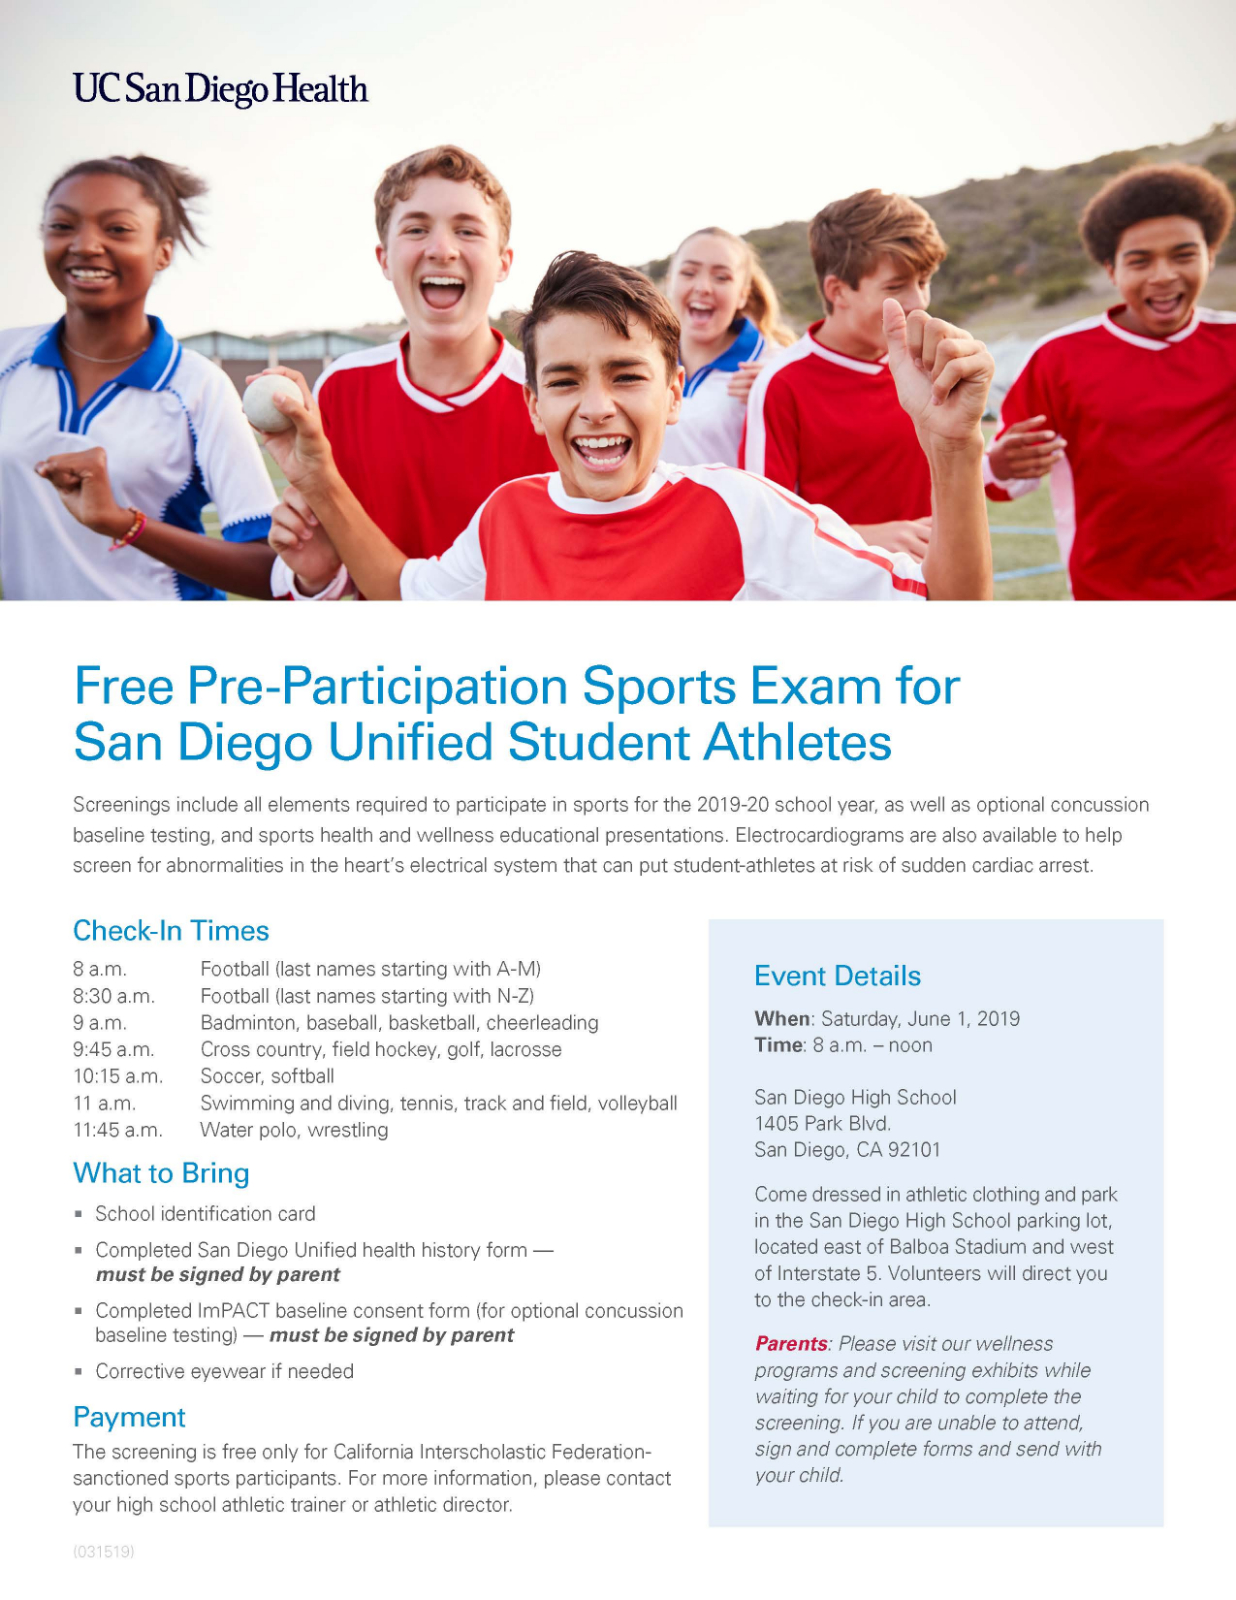 FREE Physical June 1st San Diego High